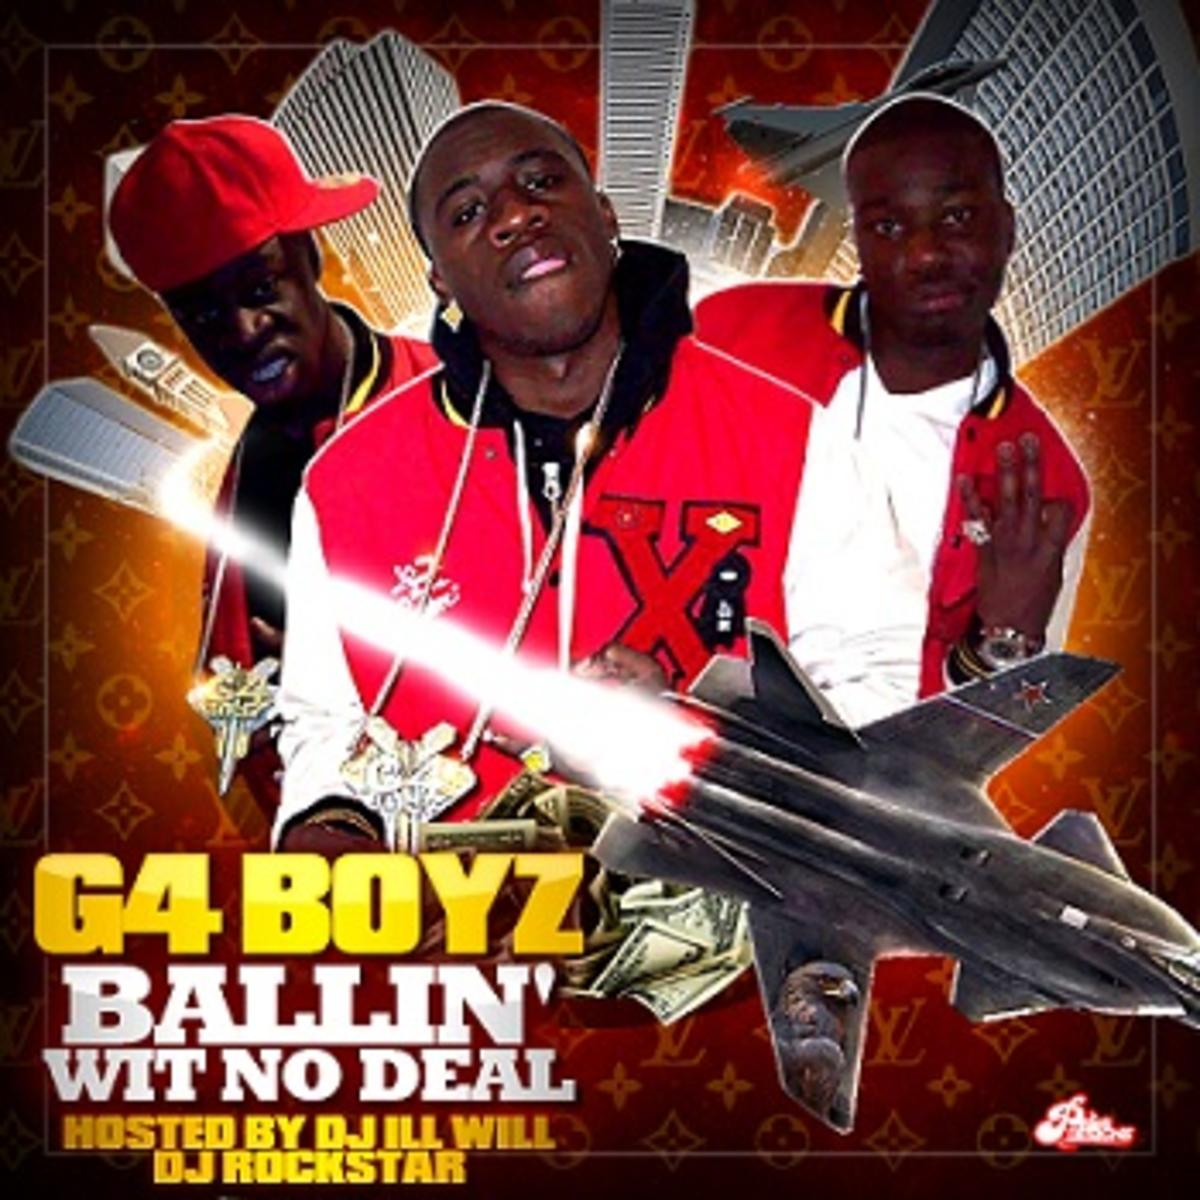 Alley Boy Responds To G4 Boyz g4 boyz - ballin wit no deal (hosteddj ill will & dj roc